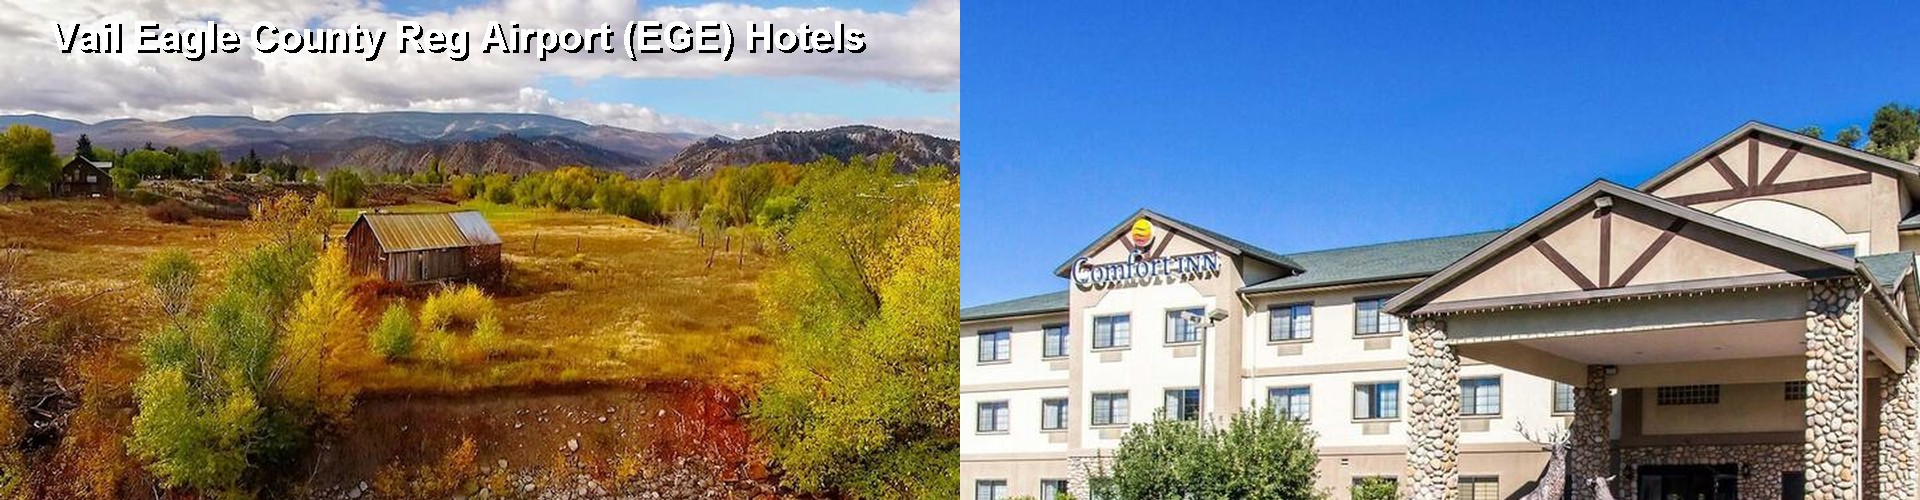 5 Best Hotels near Vail Eagle County Reg Airport (EGE)